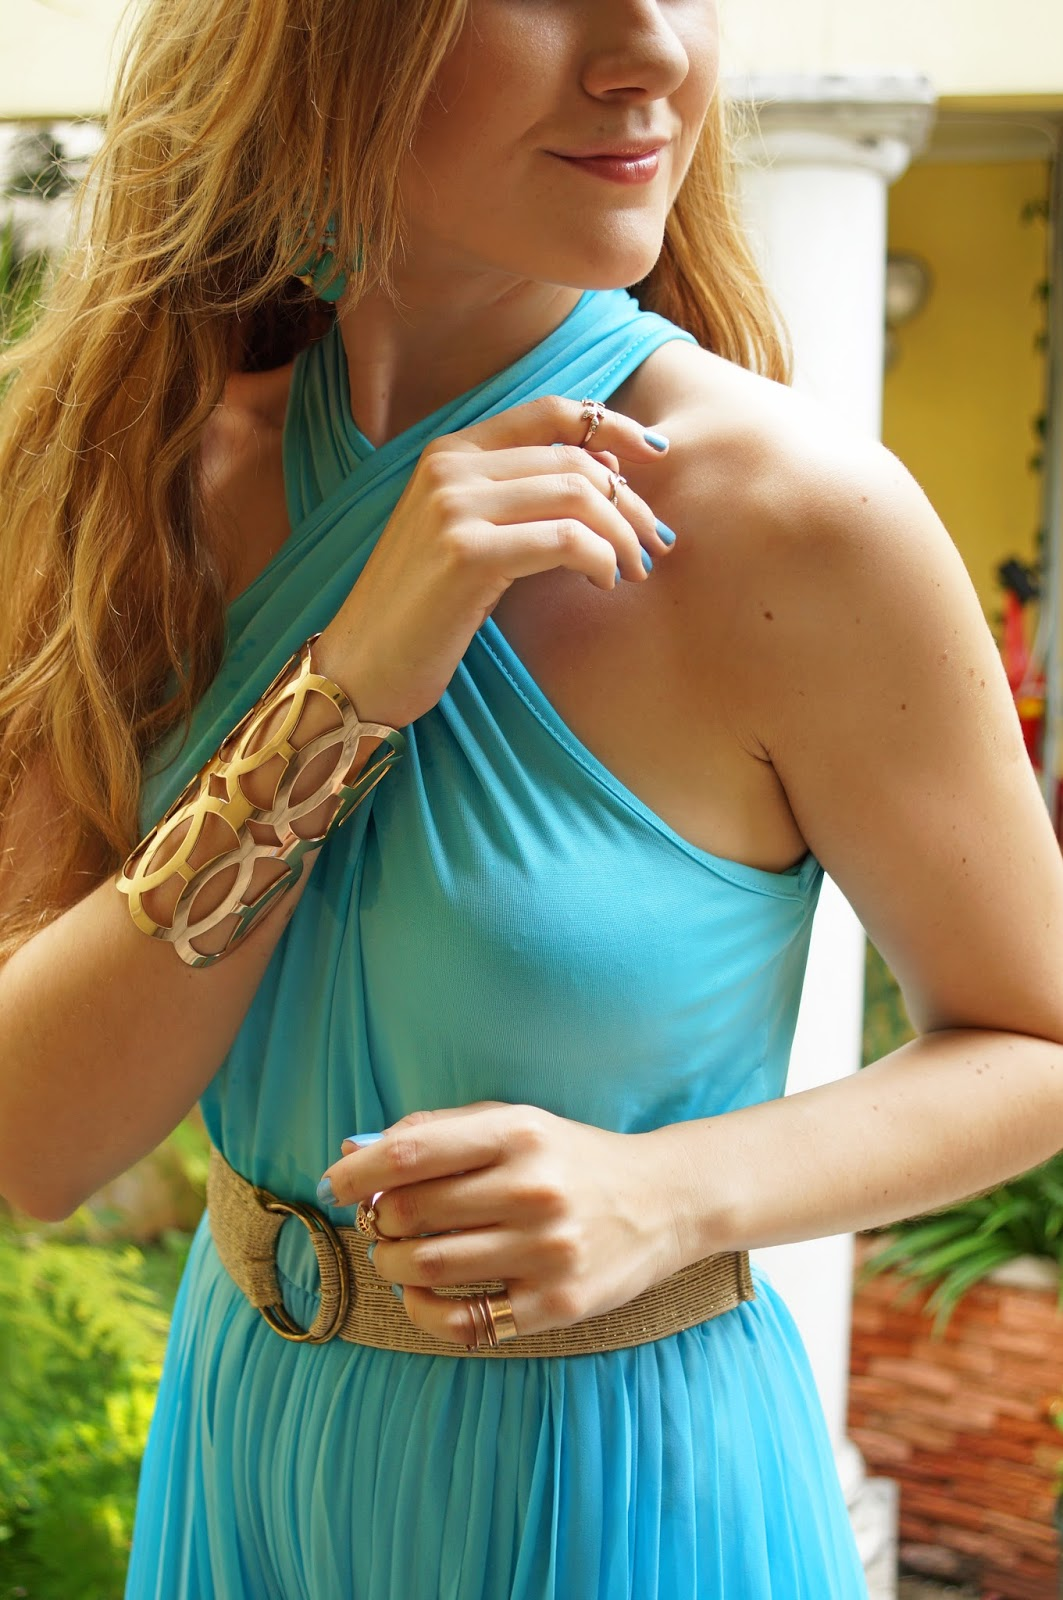 A Bold Cuff Bracelet adds pizazz to a simple outfit